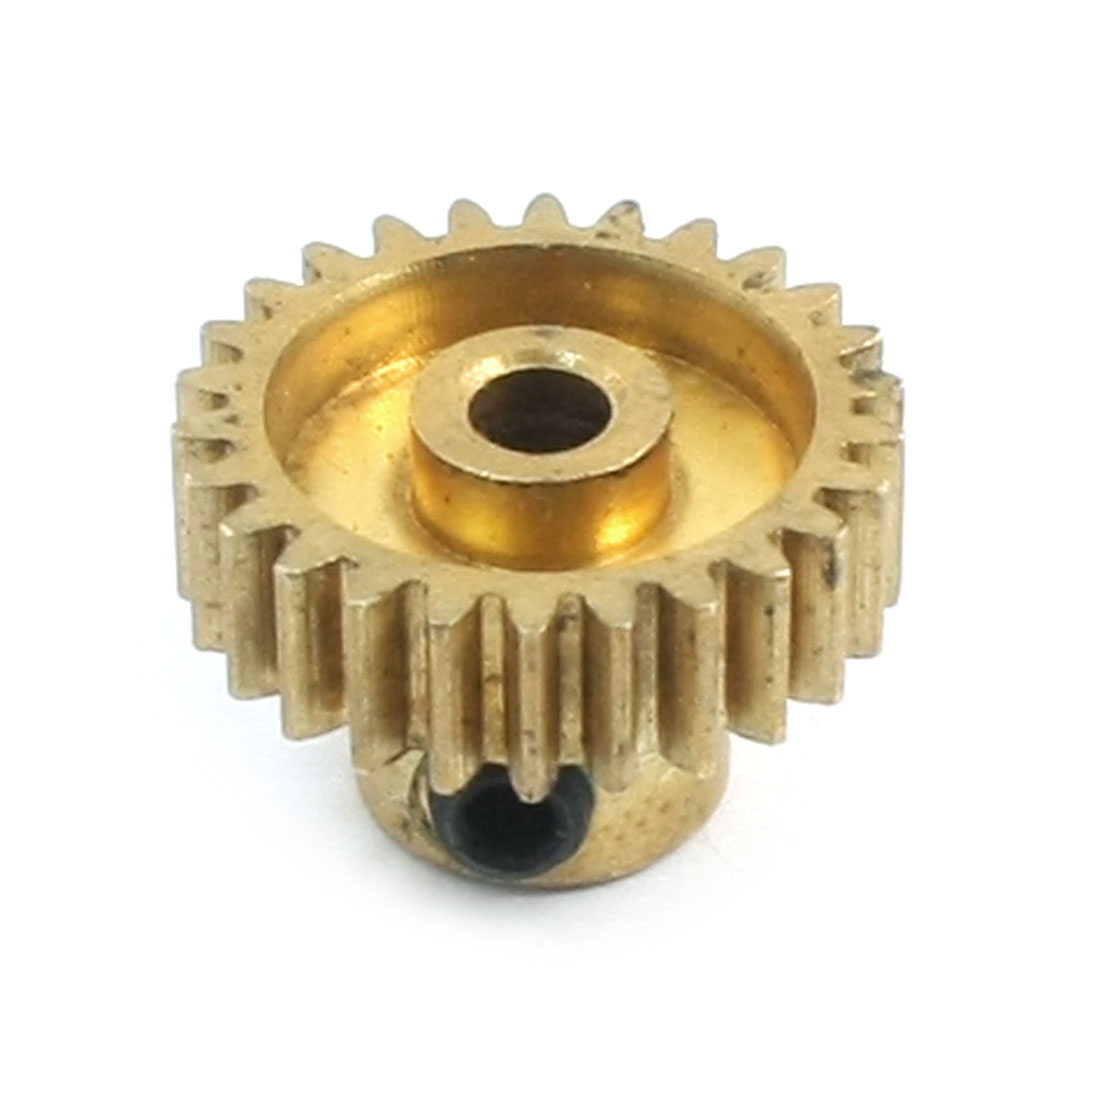 03005 26T Gold Tone Metal Motor Gear for 94123 RC 1/10 Model Car